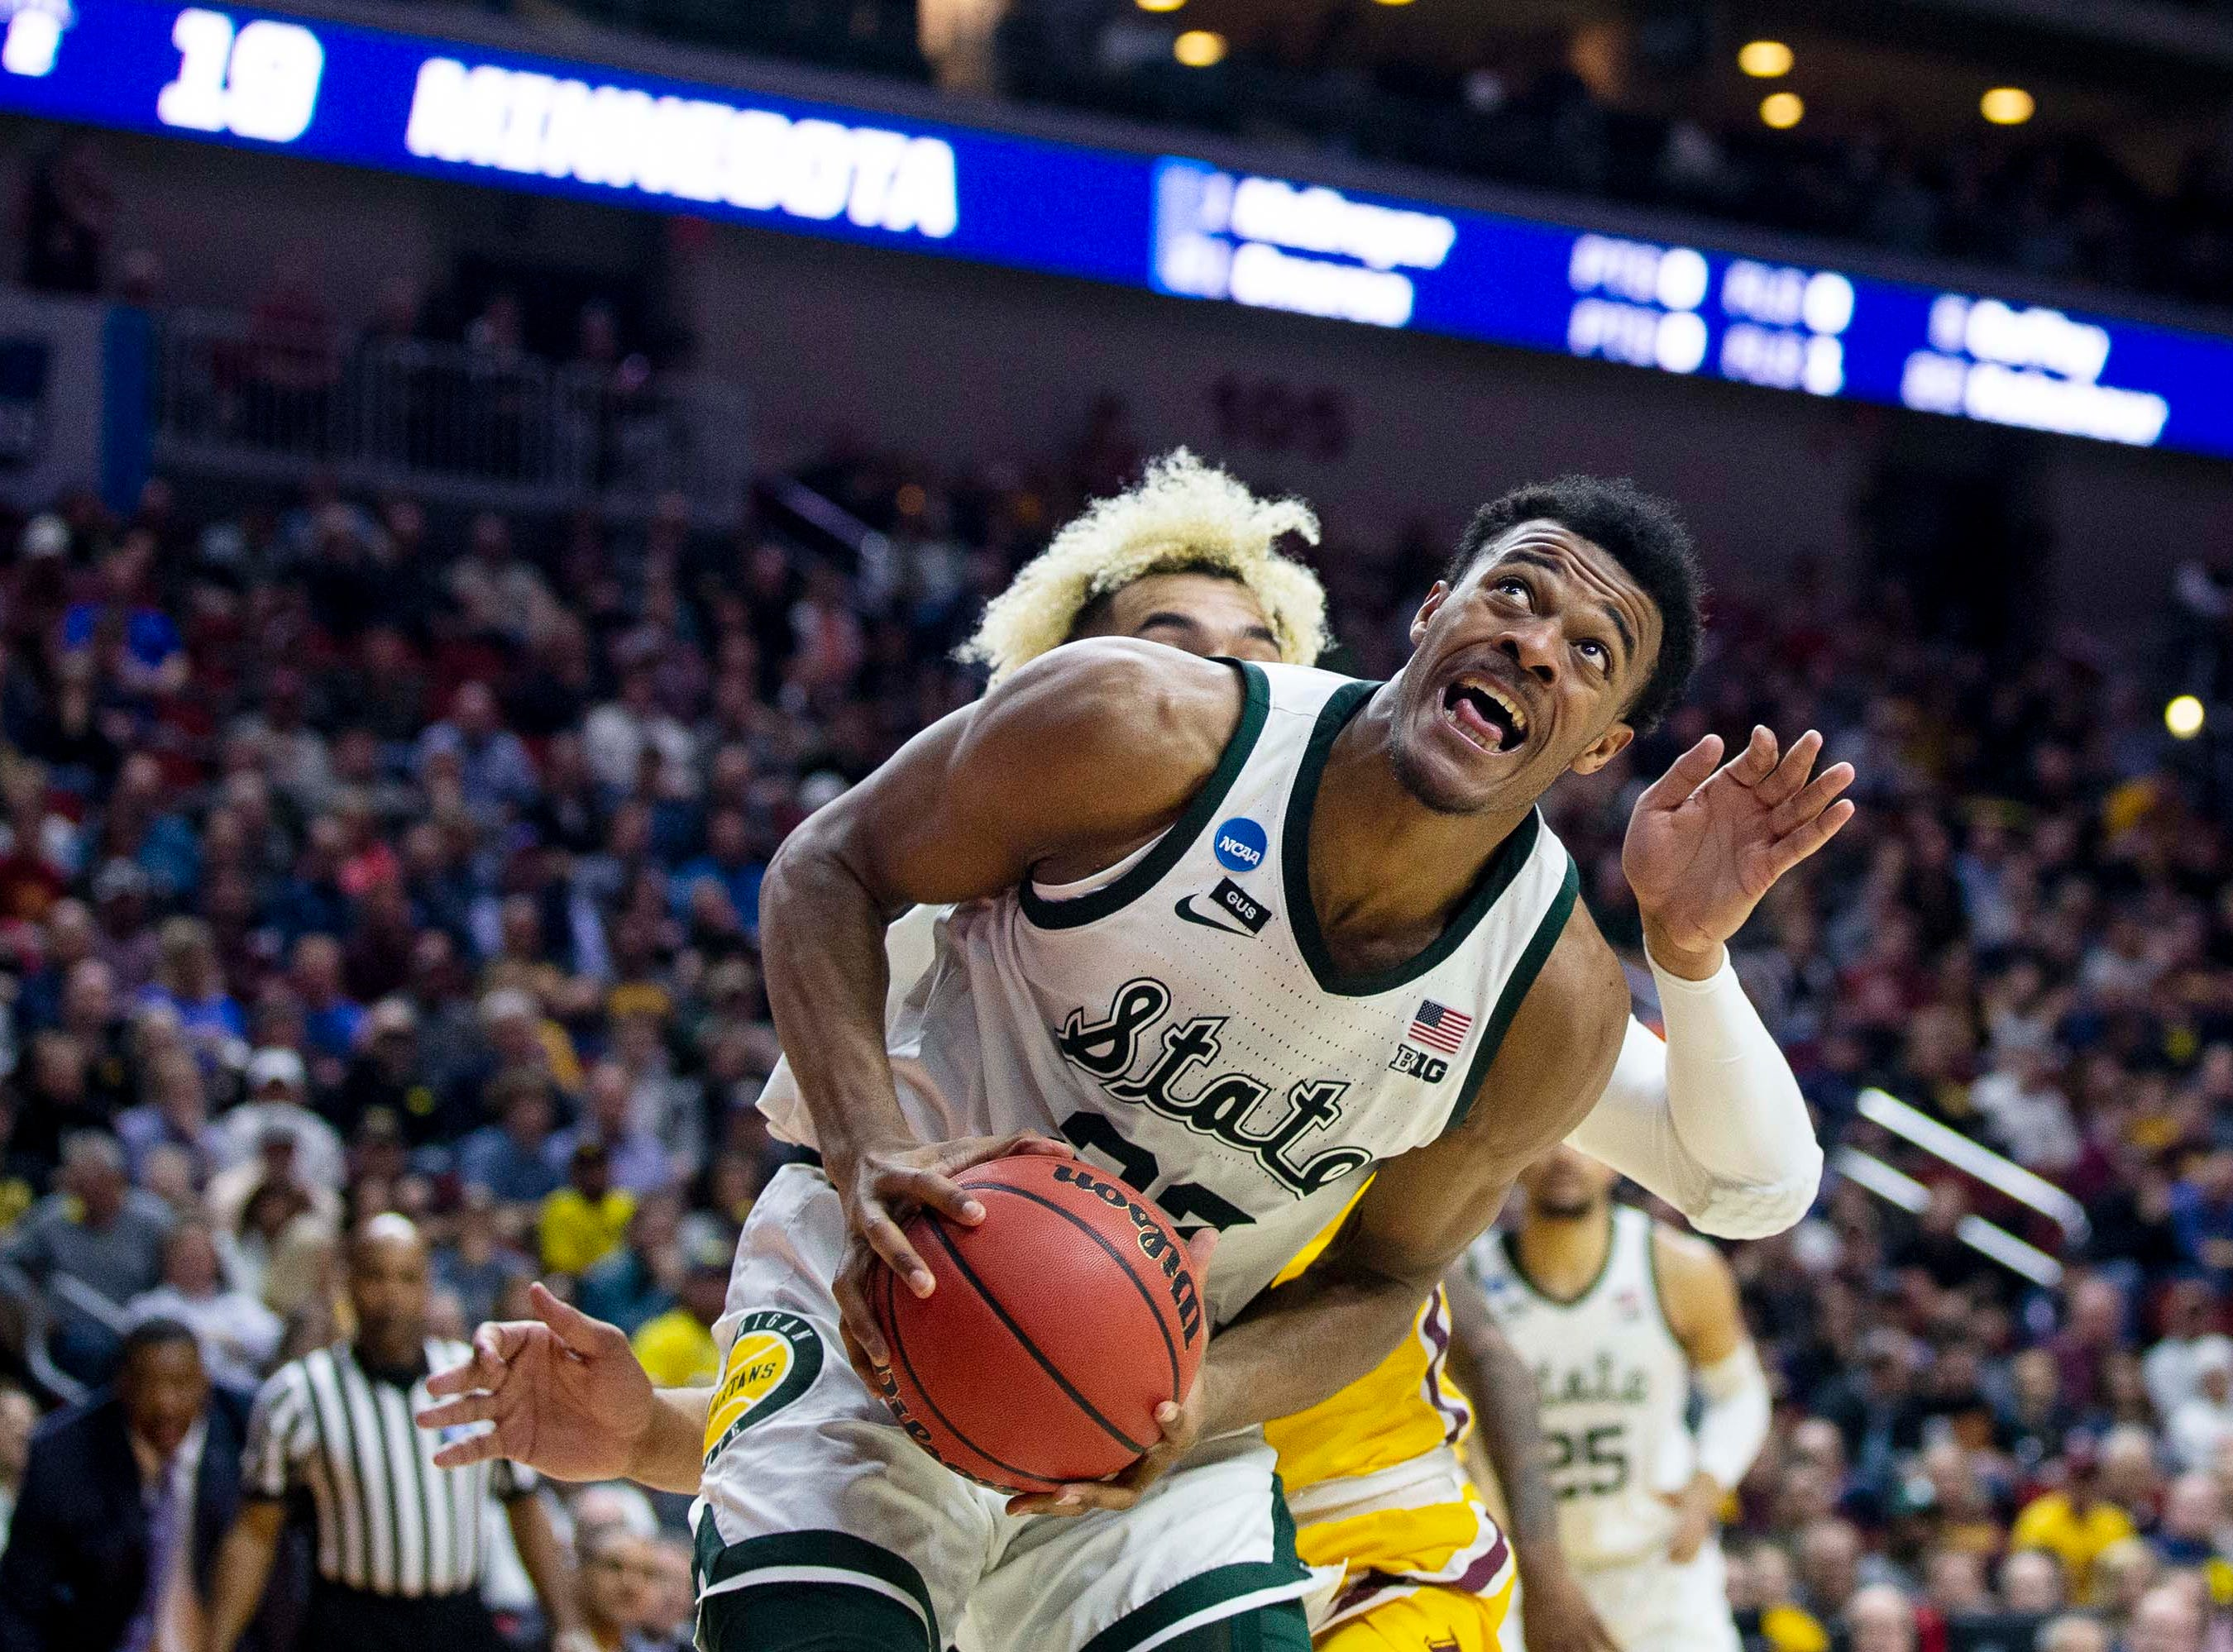 Michigan State's Xavier Tillman looks to make a shot during the NCAA Tournament second-round match-up between Minnesota and Michigan State on Saturday, March 23, 2019, in Wells Fargo Arena in Des Moines, Iowa.